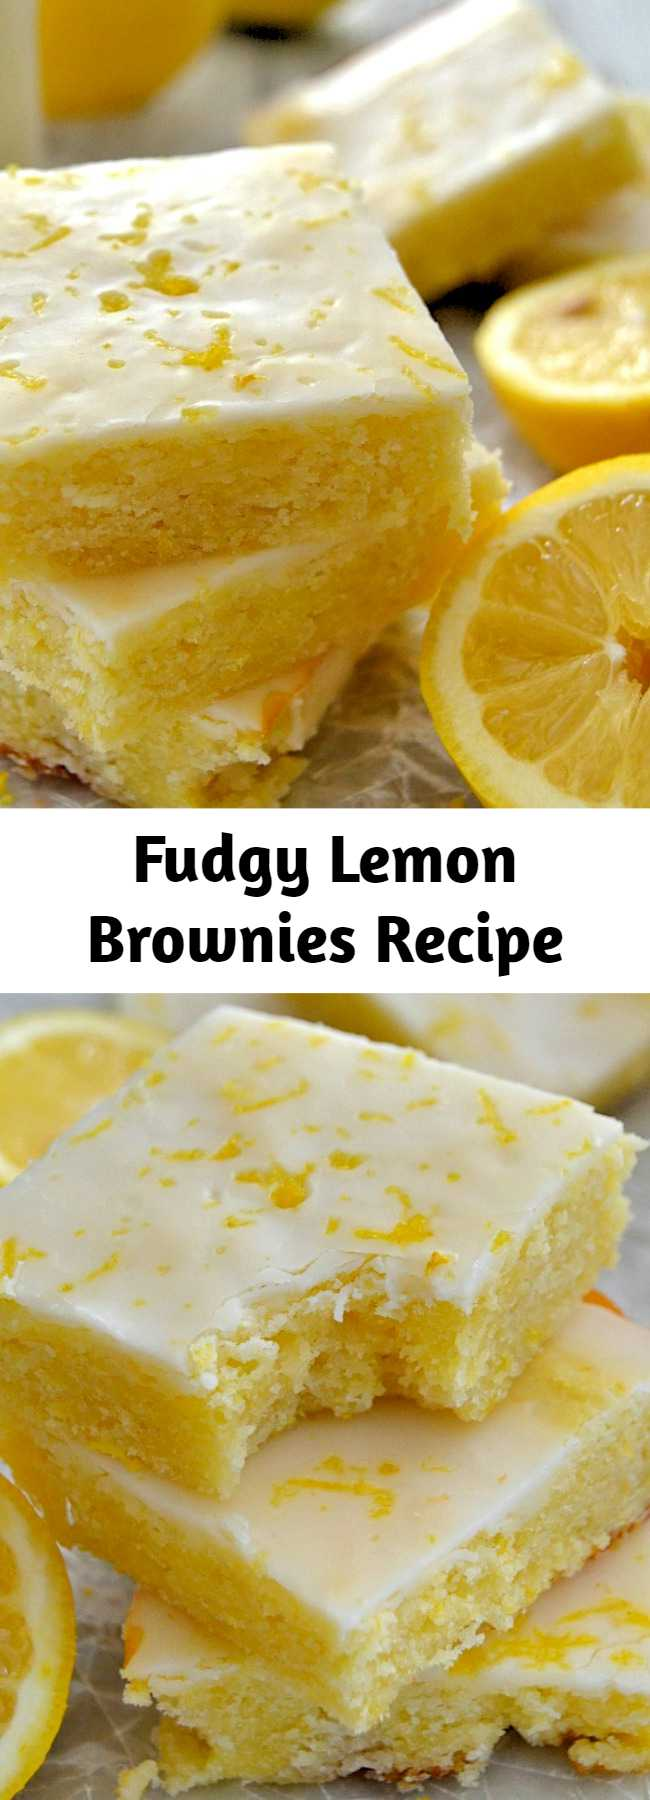 These Glazed Fudgy Lemon Brownies are incredible! Soft, chewy, moist, fudgy and packed with fresh lemon flavor!